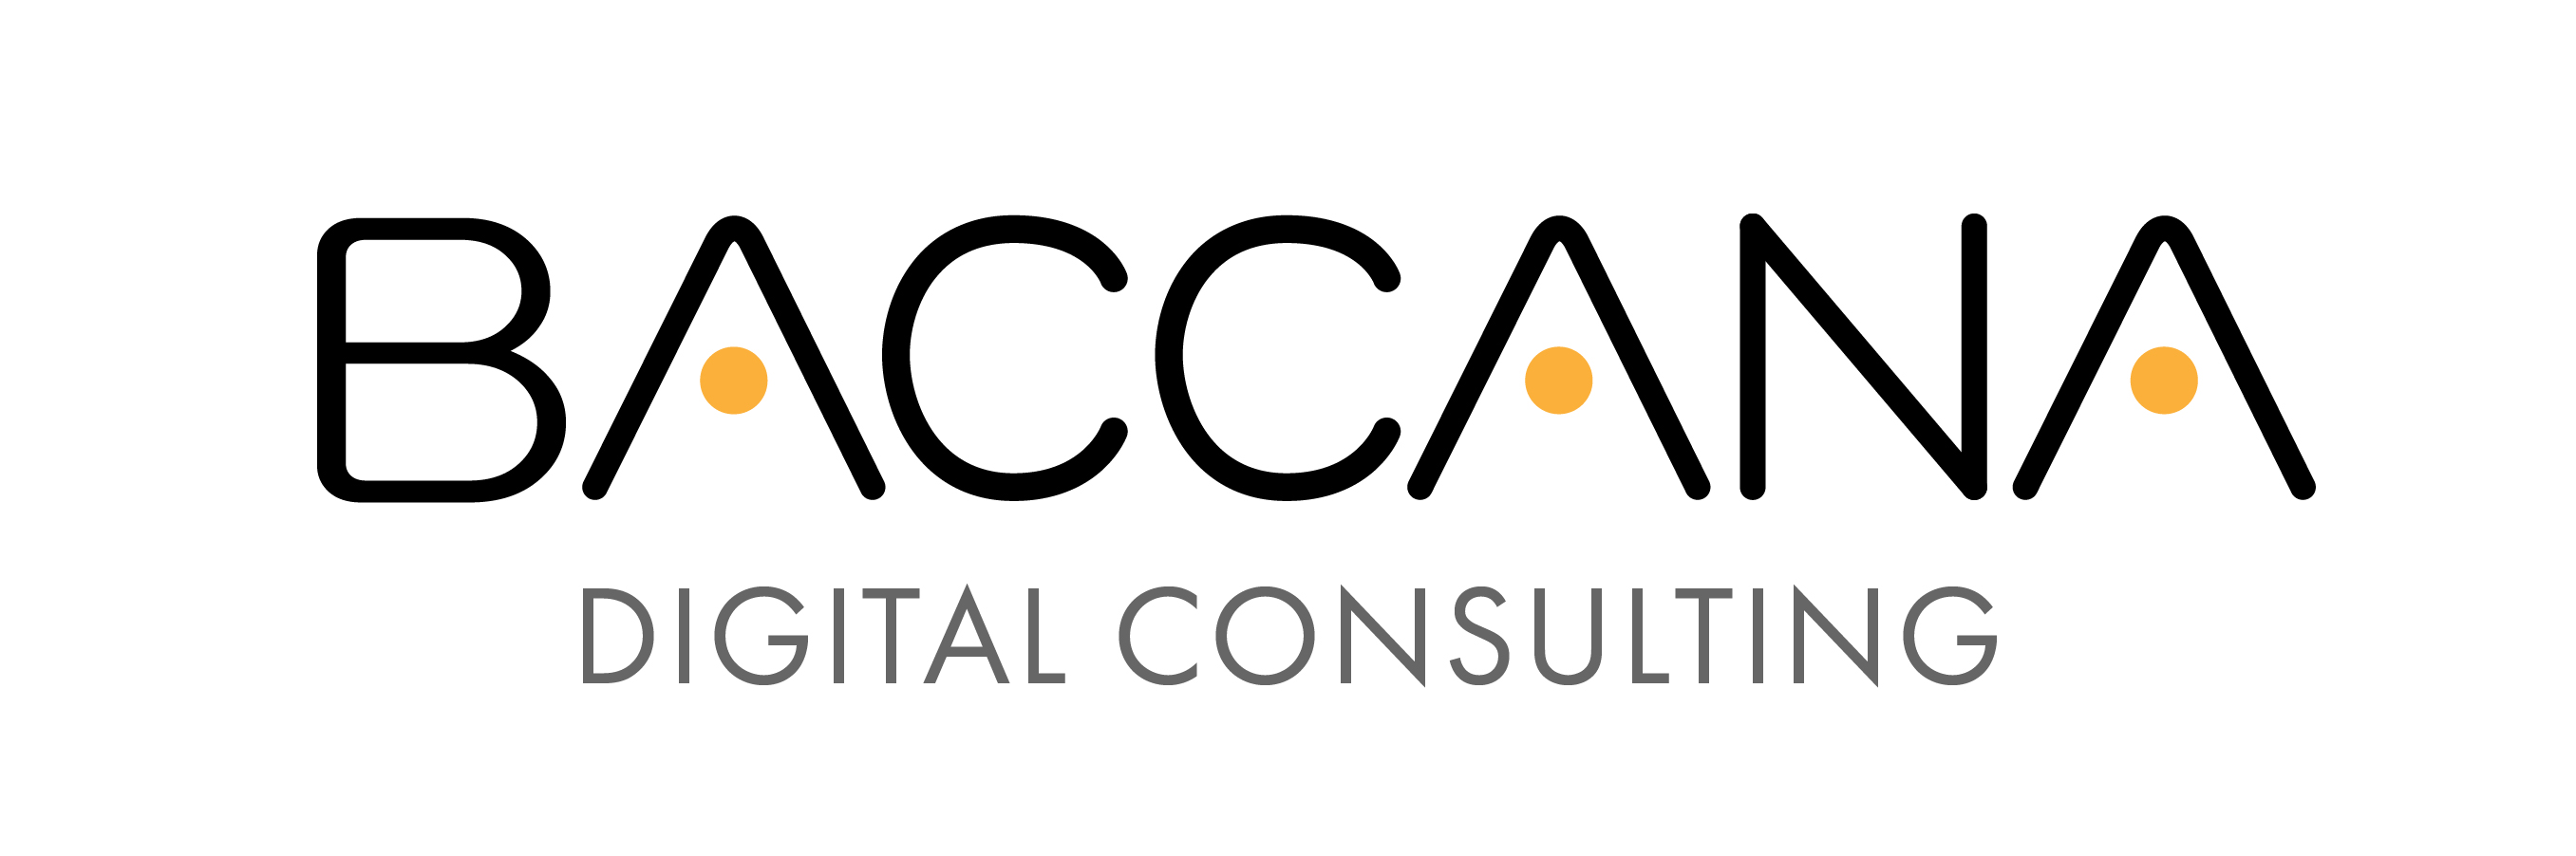 BACCANA DIGITAL CONSULTING